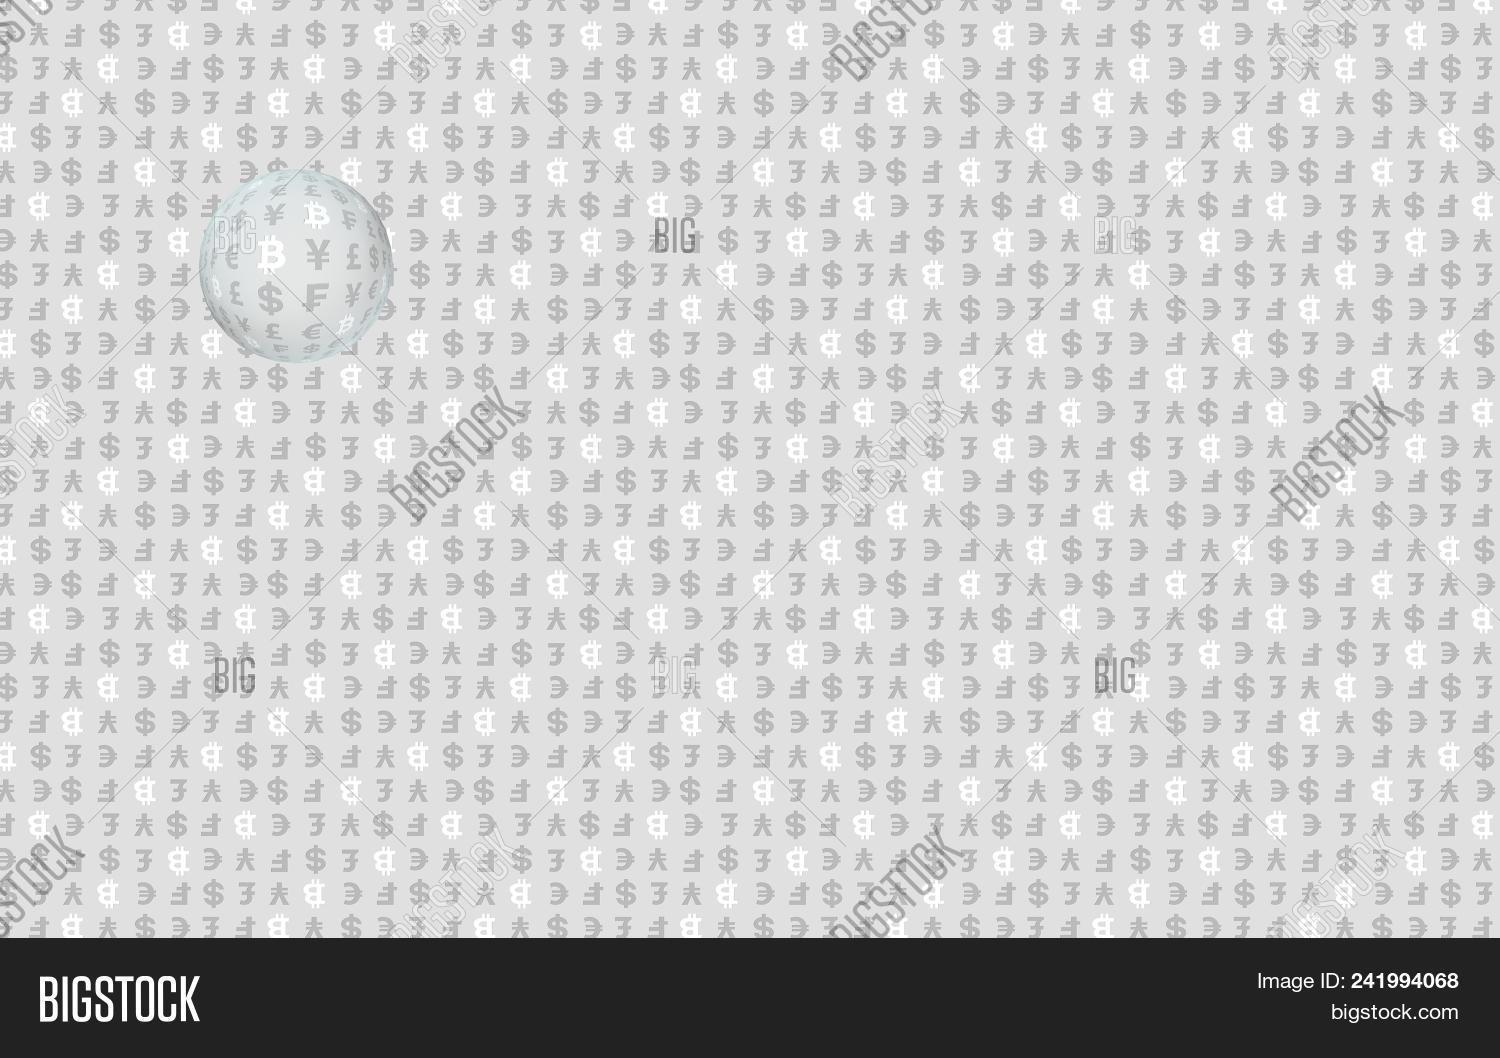 Bitcoin Cryptocurrency Image Photo Free Trial Bigstock